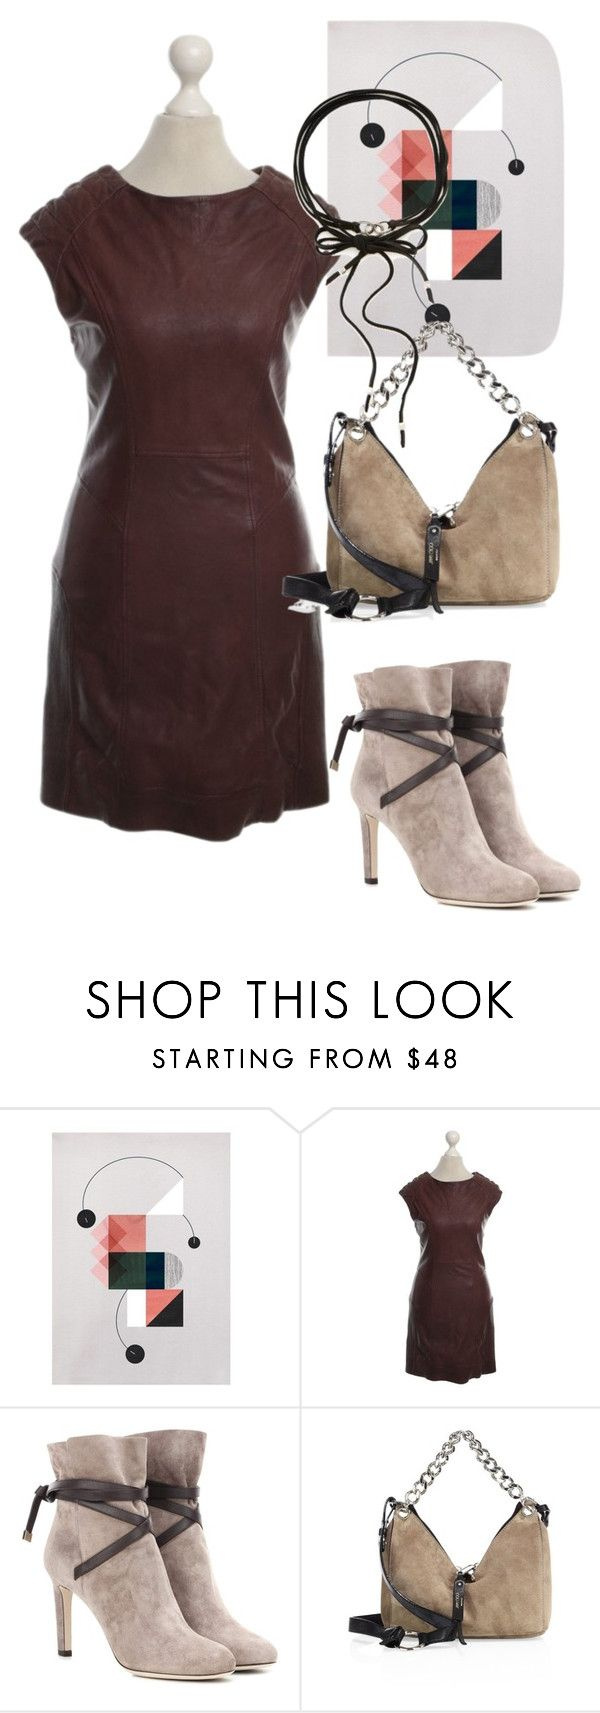 """""""dresd"""" by masayuki4499 ❤ liked on Polyvore featuring AllSaints, Jimmy Choo and Chan Luu"""